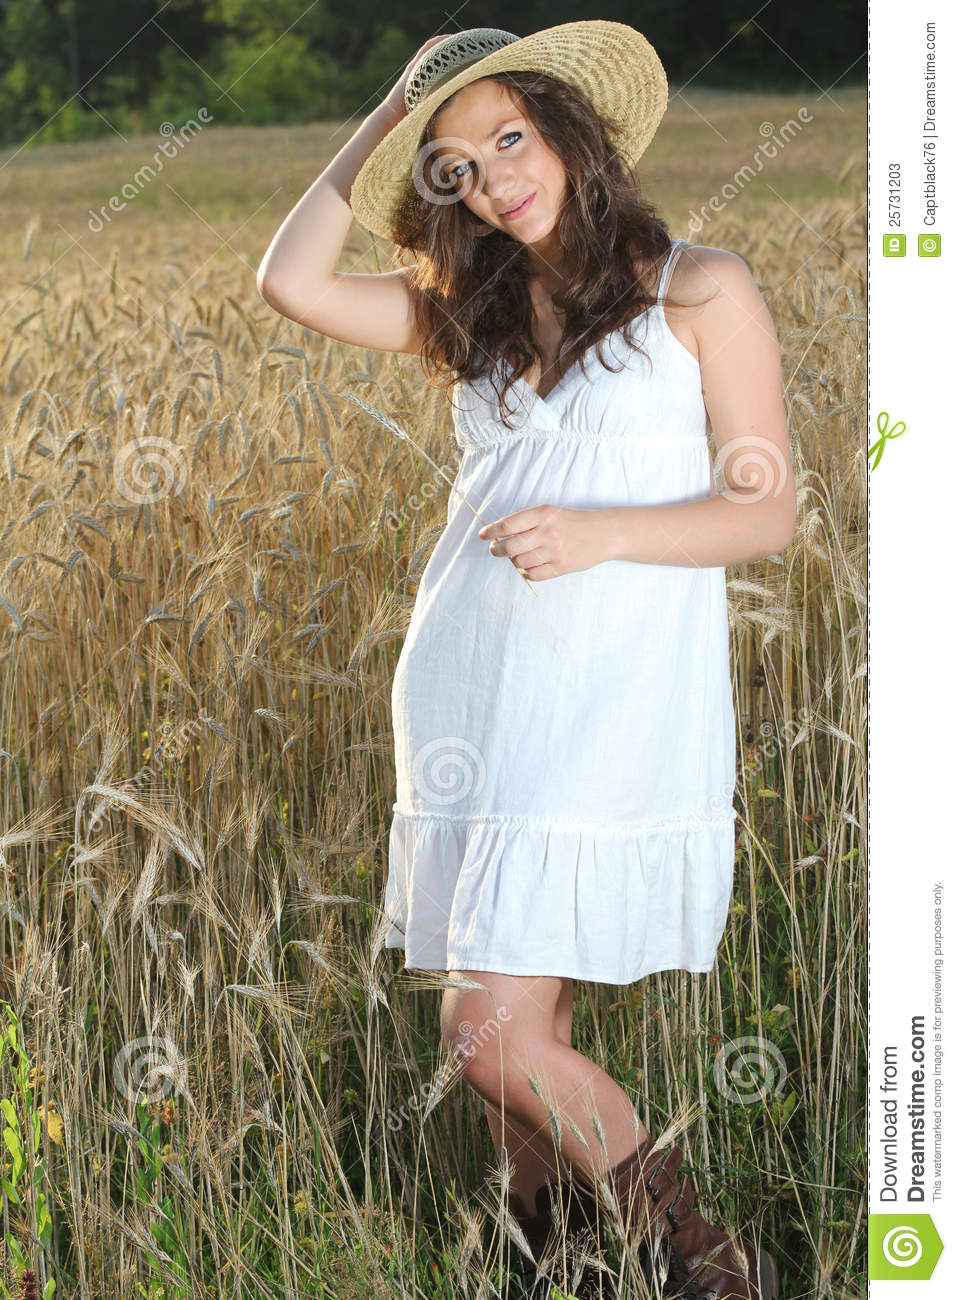 Young pretty girl posing in a wheat field